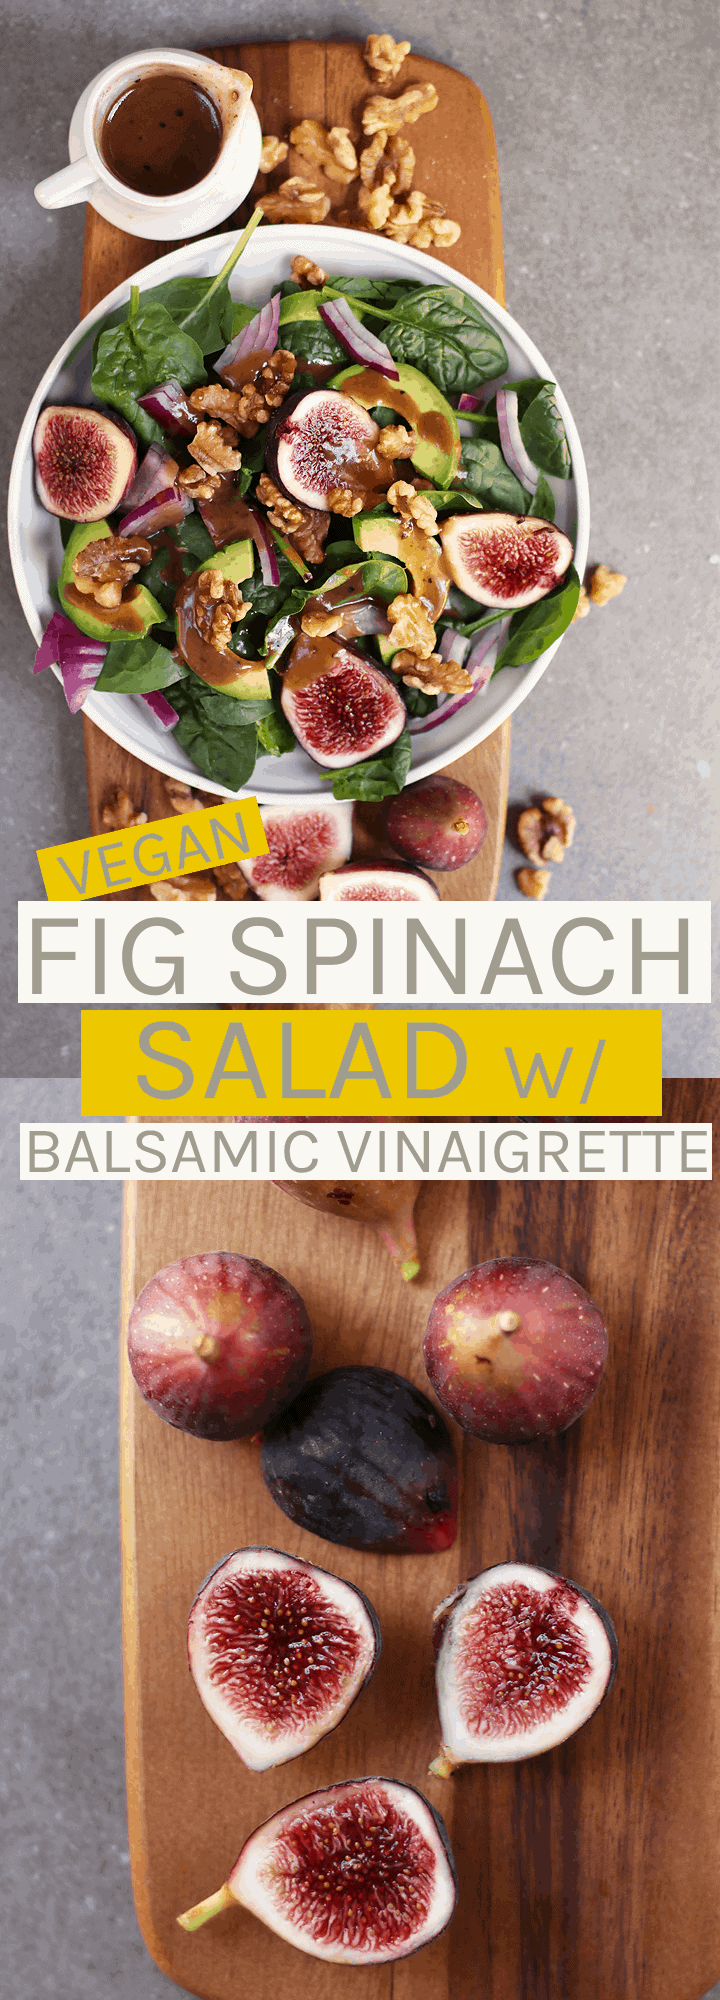 Celebrate the season with this Fig Spinach Salad with Avocado and Balsamic Vinaigrette